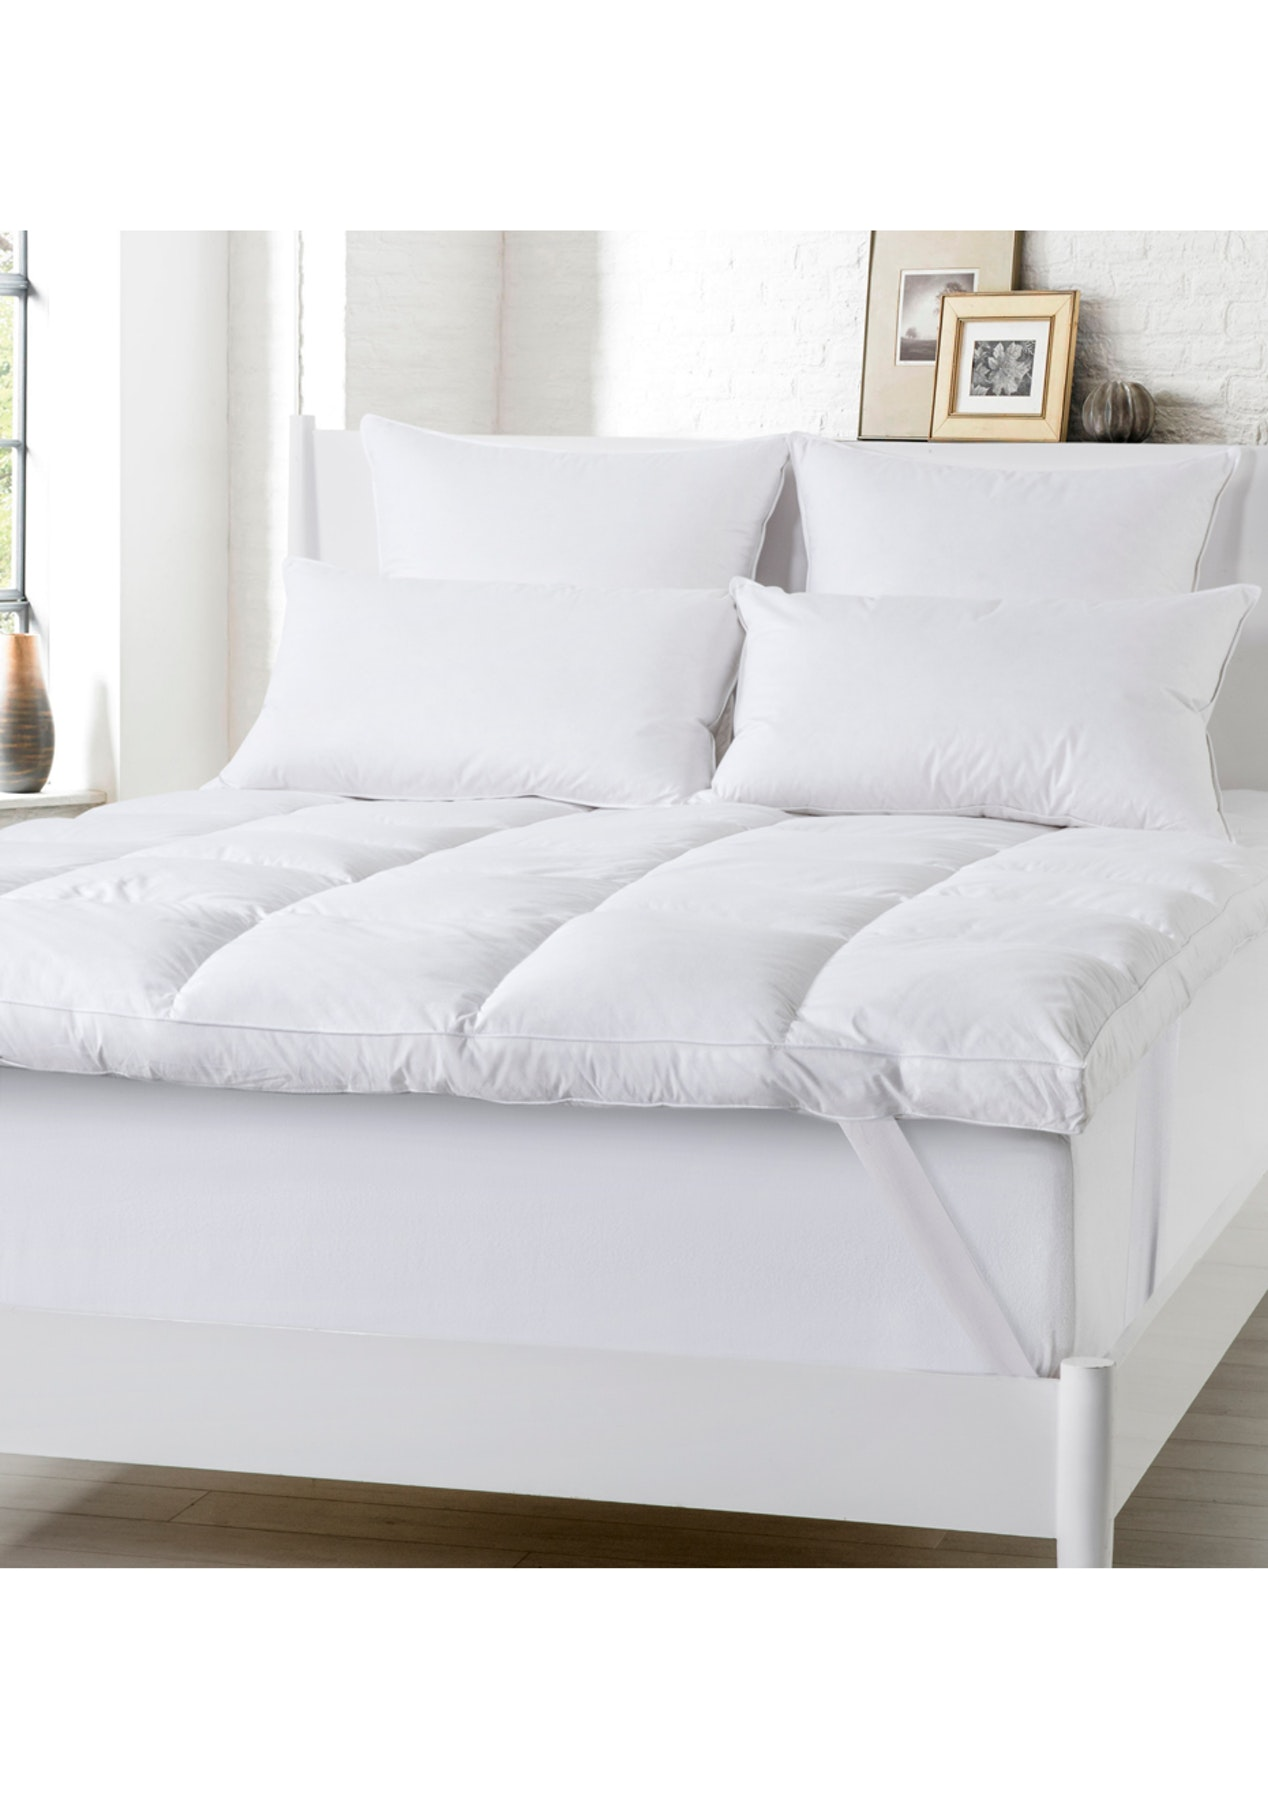 King Bed Grand Atelier Luxury 25 Down 75 Duck Feather Mattress